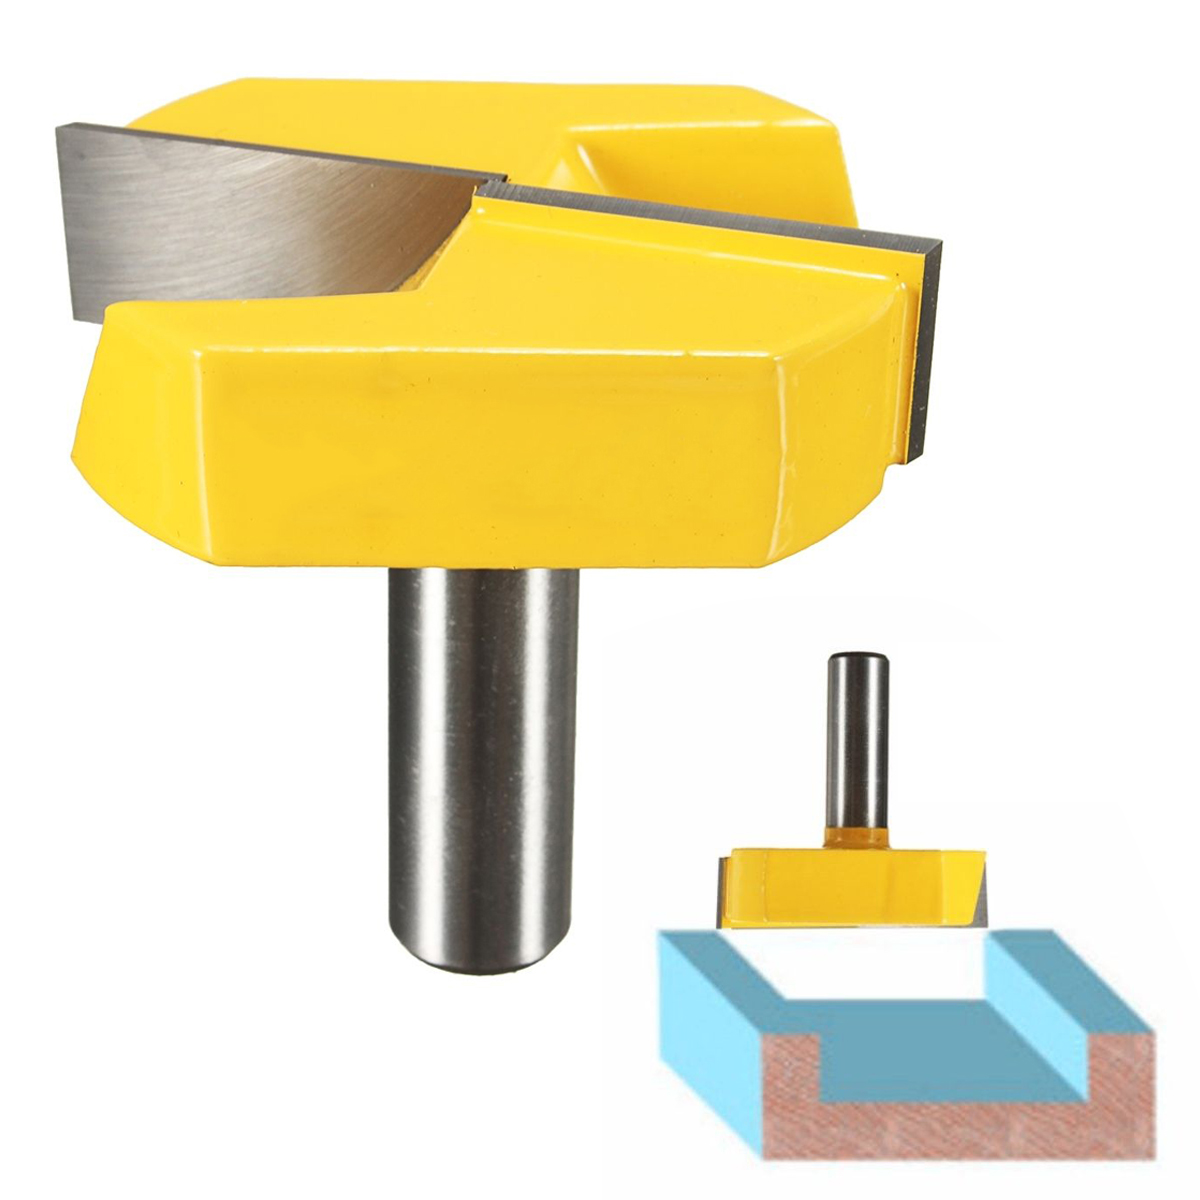 1/2 Shank 2-1/4 Diameter Bottom Cleaning Router Bit Mayitr High-precision Woodworking Milling Cutter Cutting Tools for MDF mayitr woodworking cutter bit 1 2 shank engraving molding router bit shaker for wood milling cutter